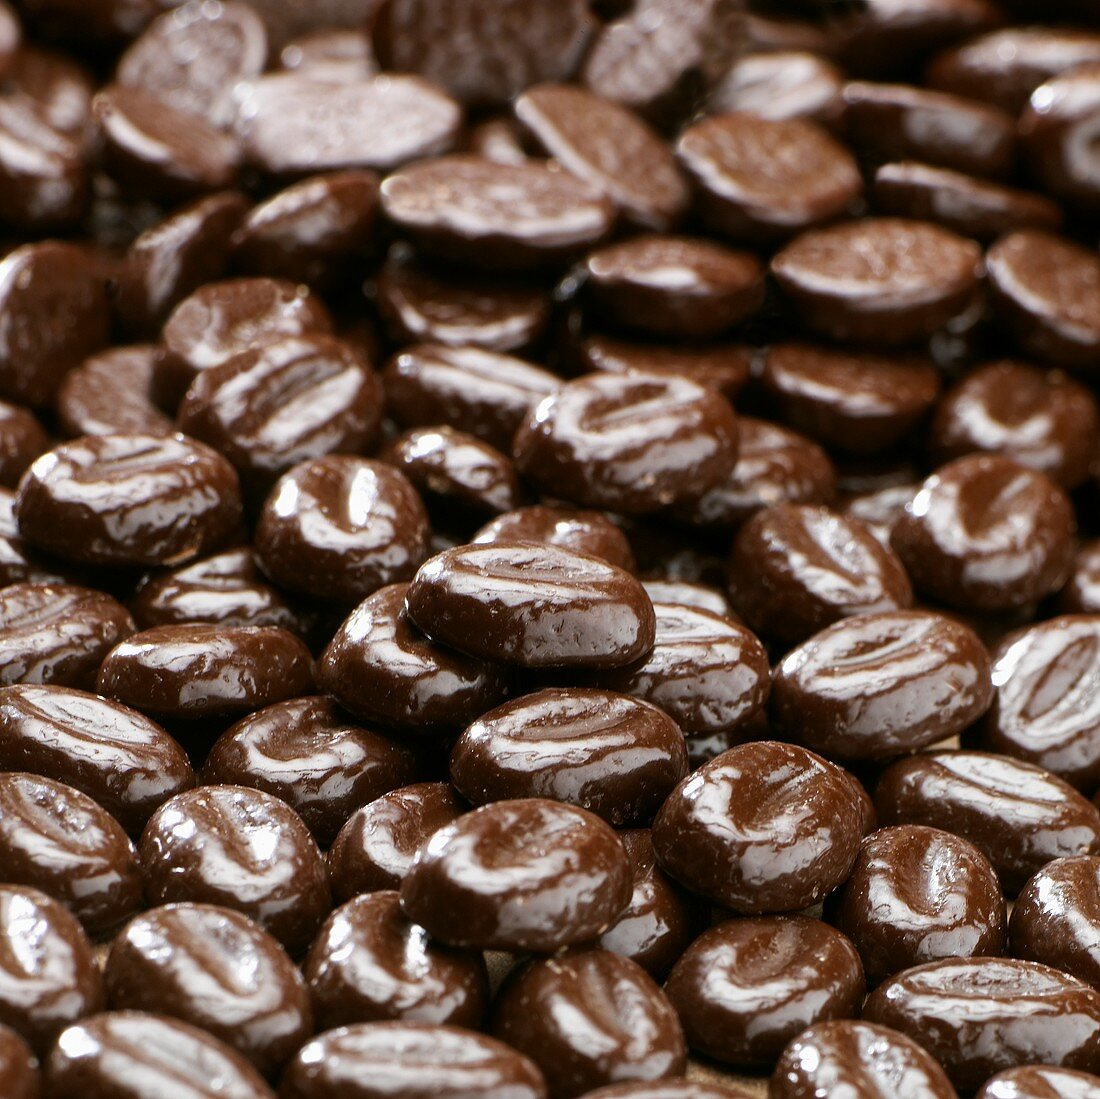 Mocha beans (filling the picture)